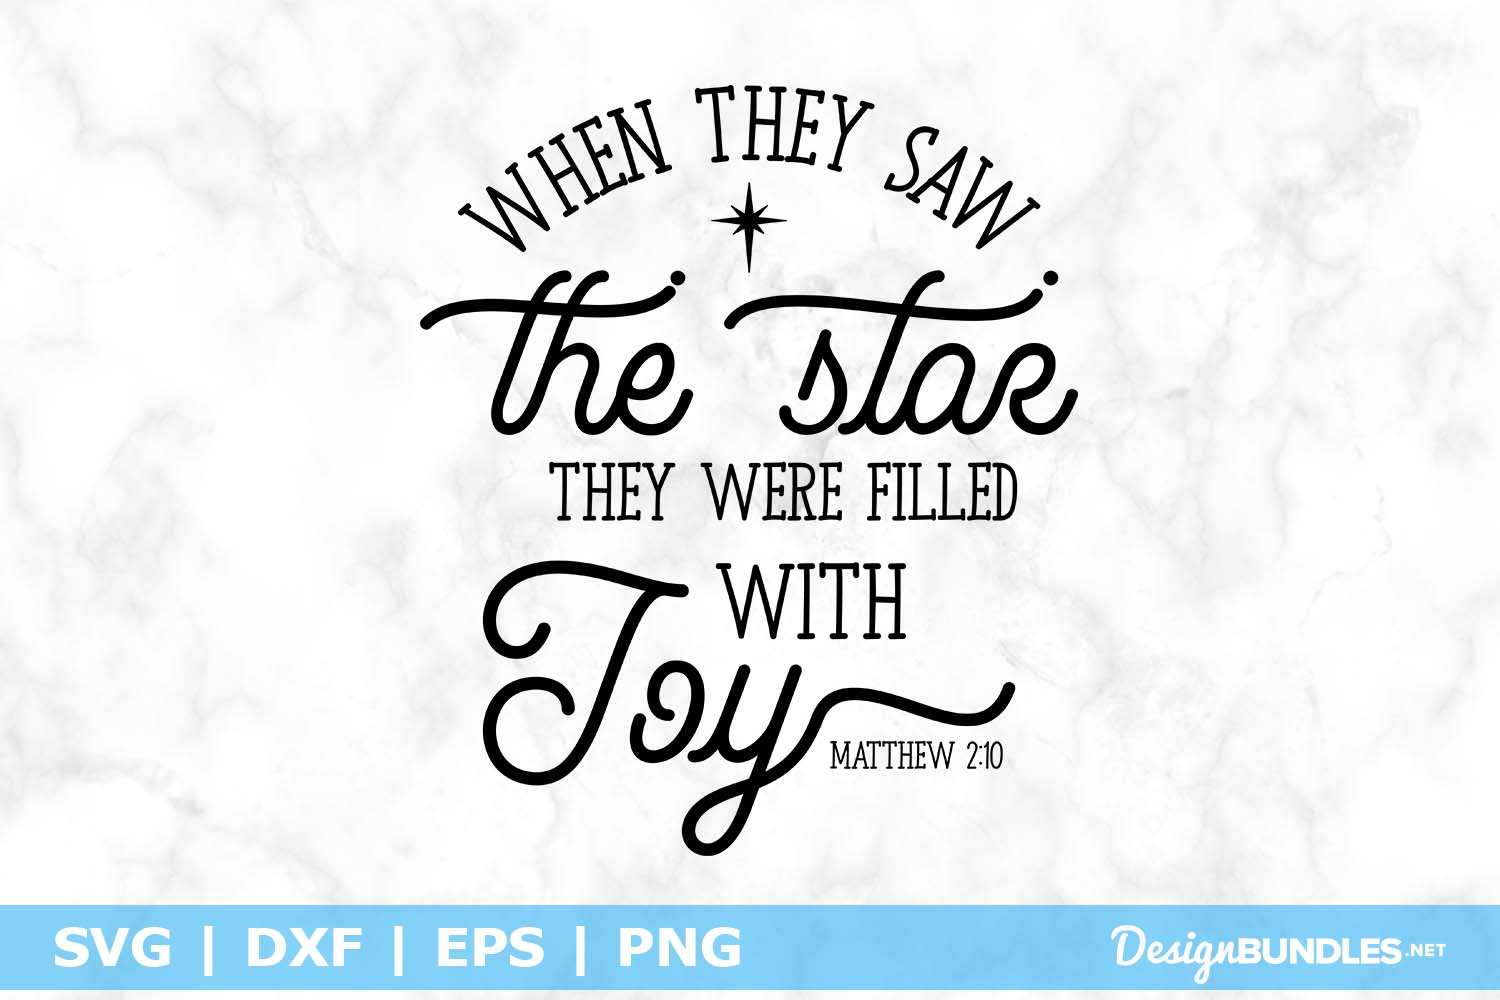 When They Saw The Star They Were Filled With Joy SVG File example image 1